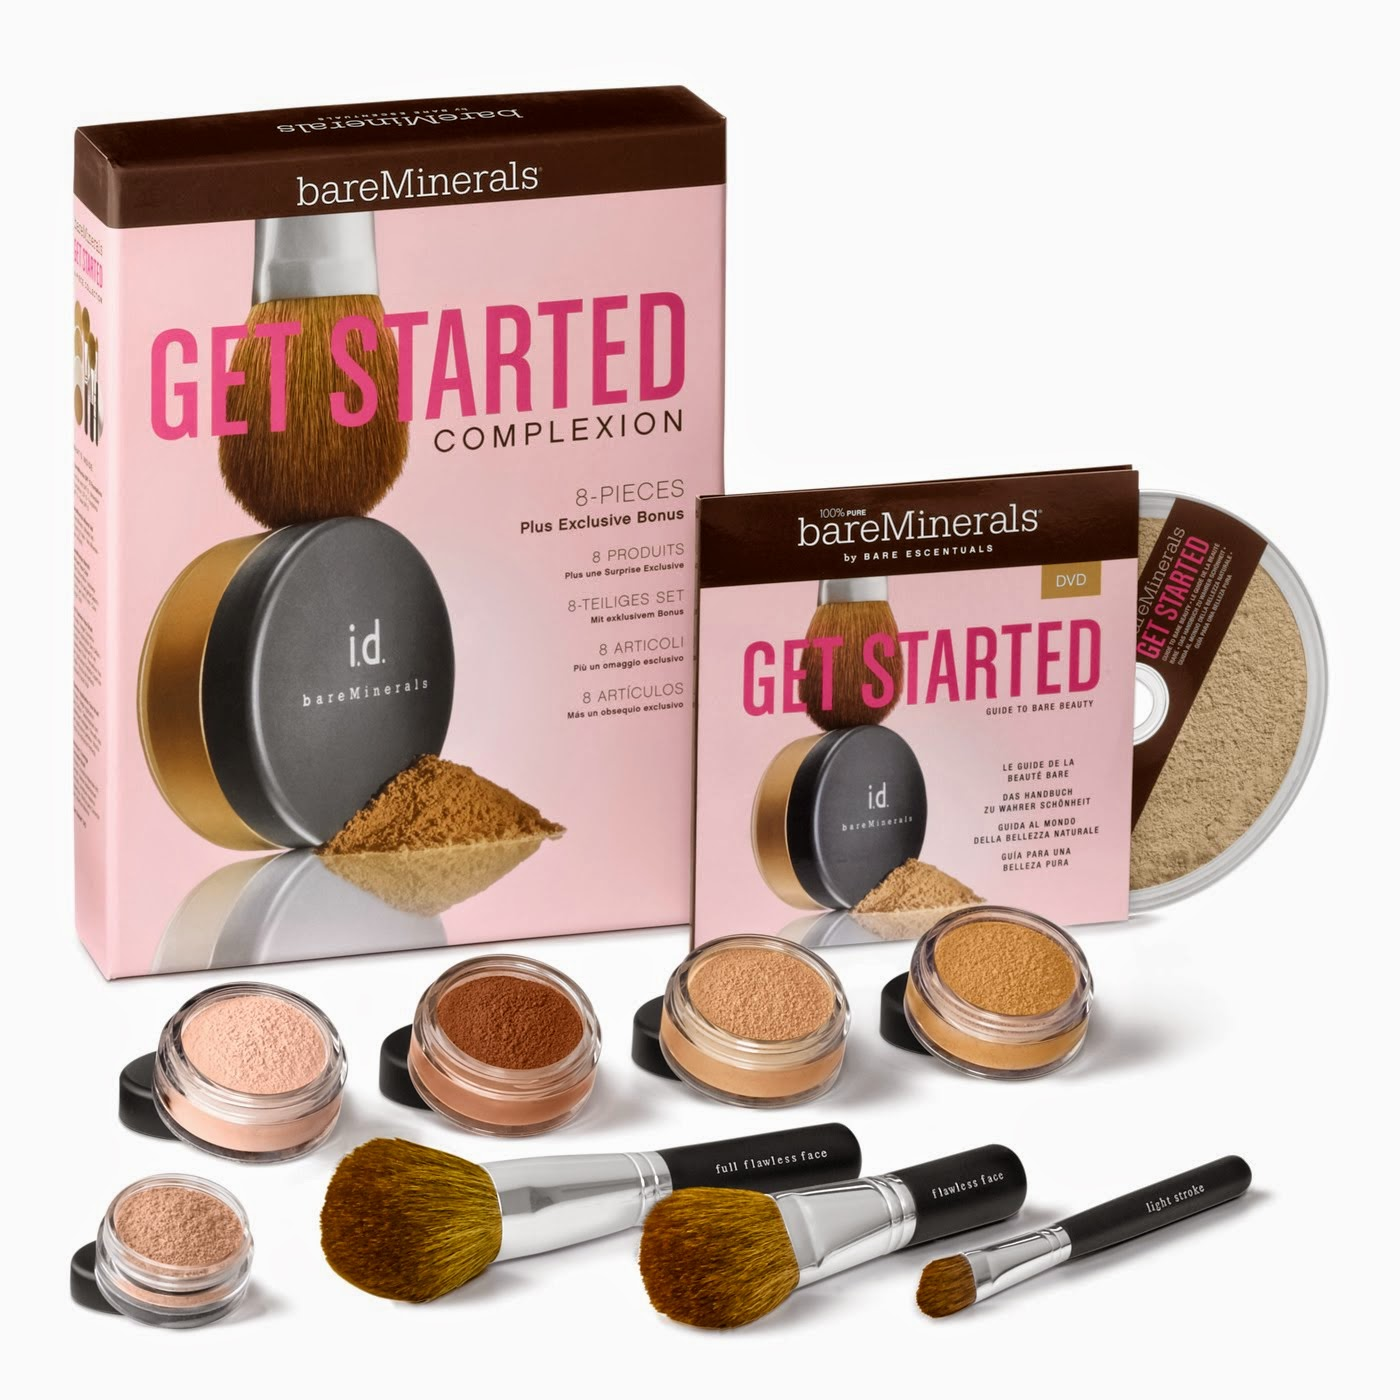 36a295005fe1 Great Makeup Sets For Teens New To Make Up Or For Those Who Want A  Beautiful Natural Look